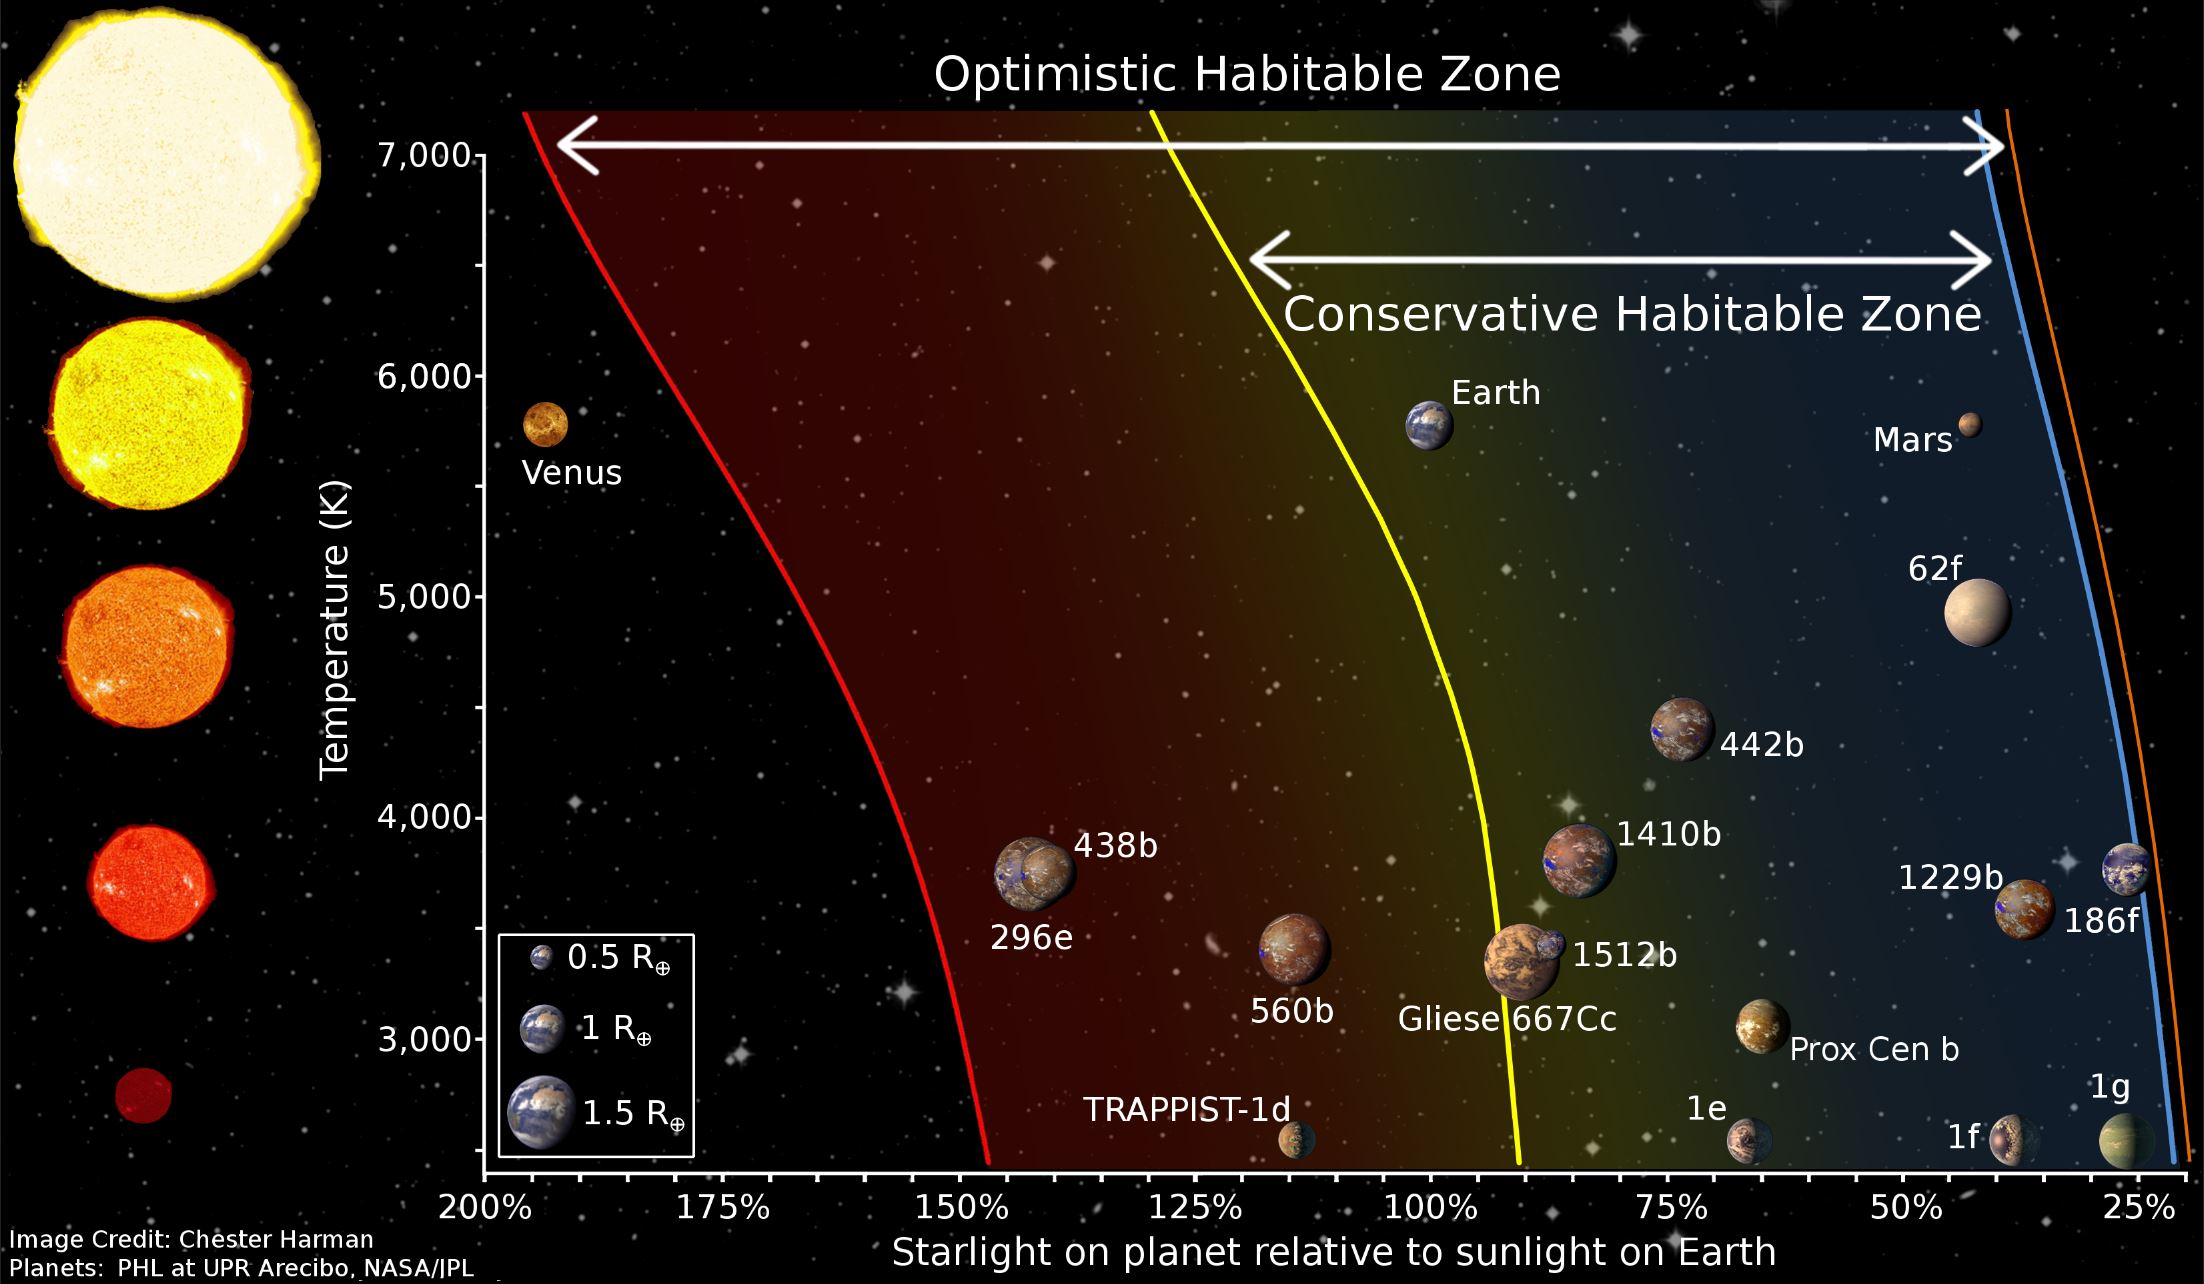 A diagram depicting the Habitable Zone (HZ) boundaries, and how the boundaries are affected by star type. - Image Credit:  Wikimedia Commons/Chester Harman